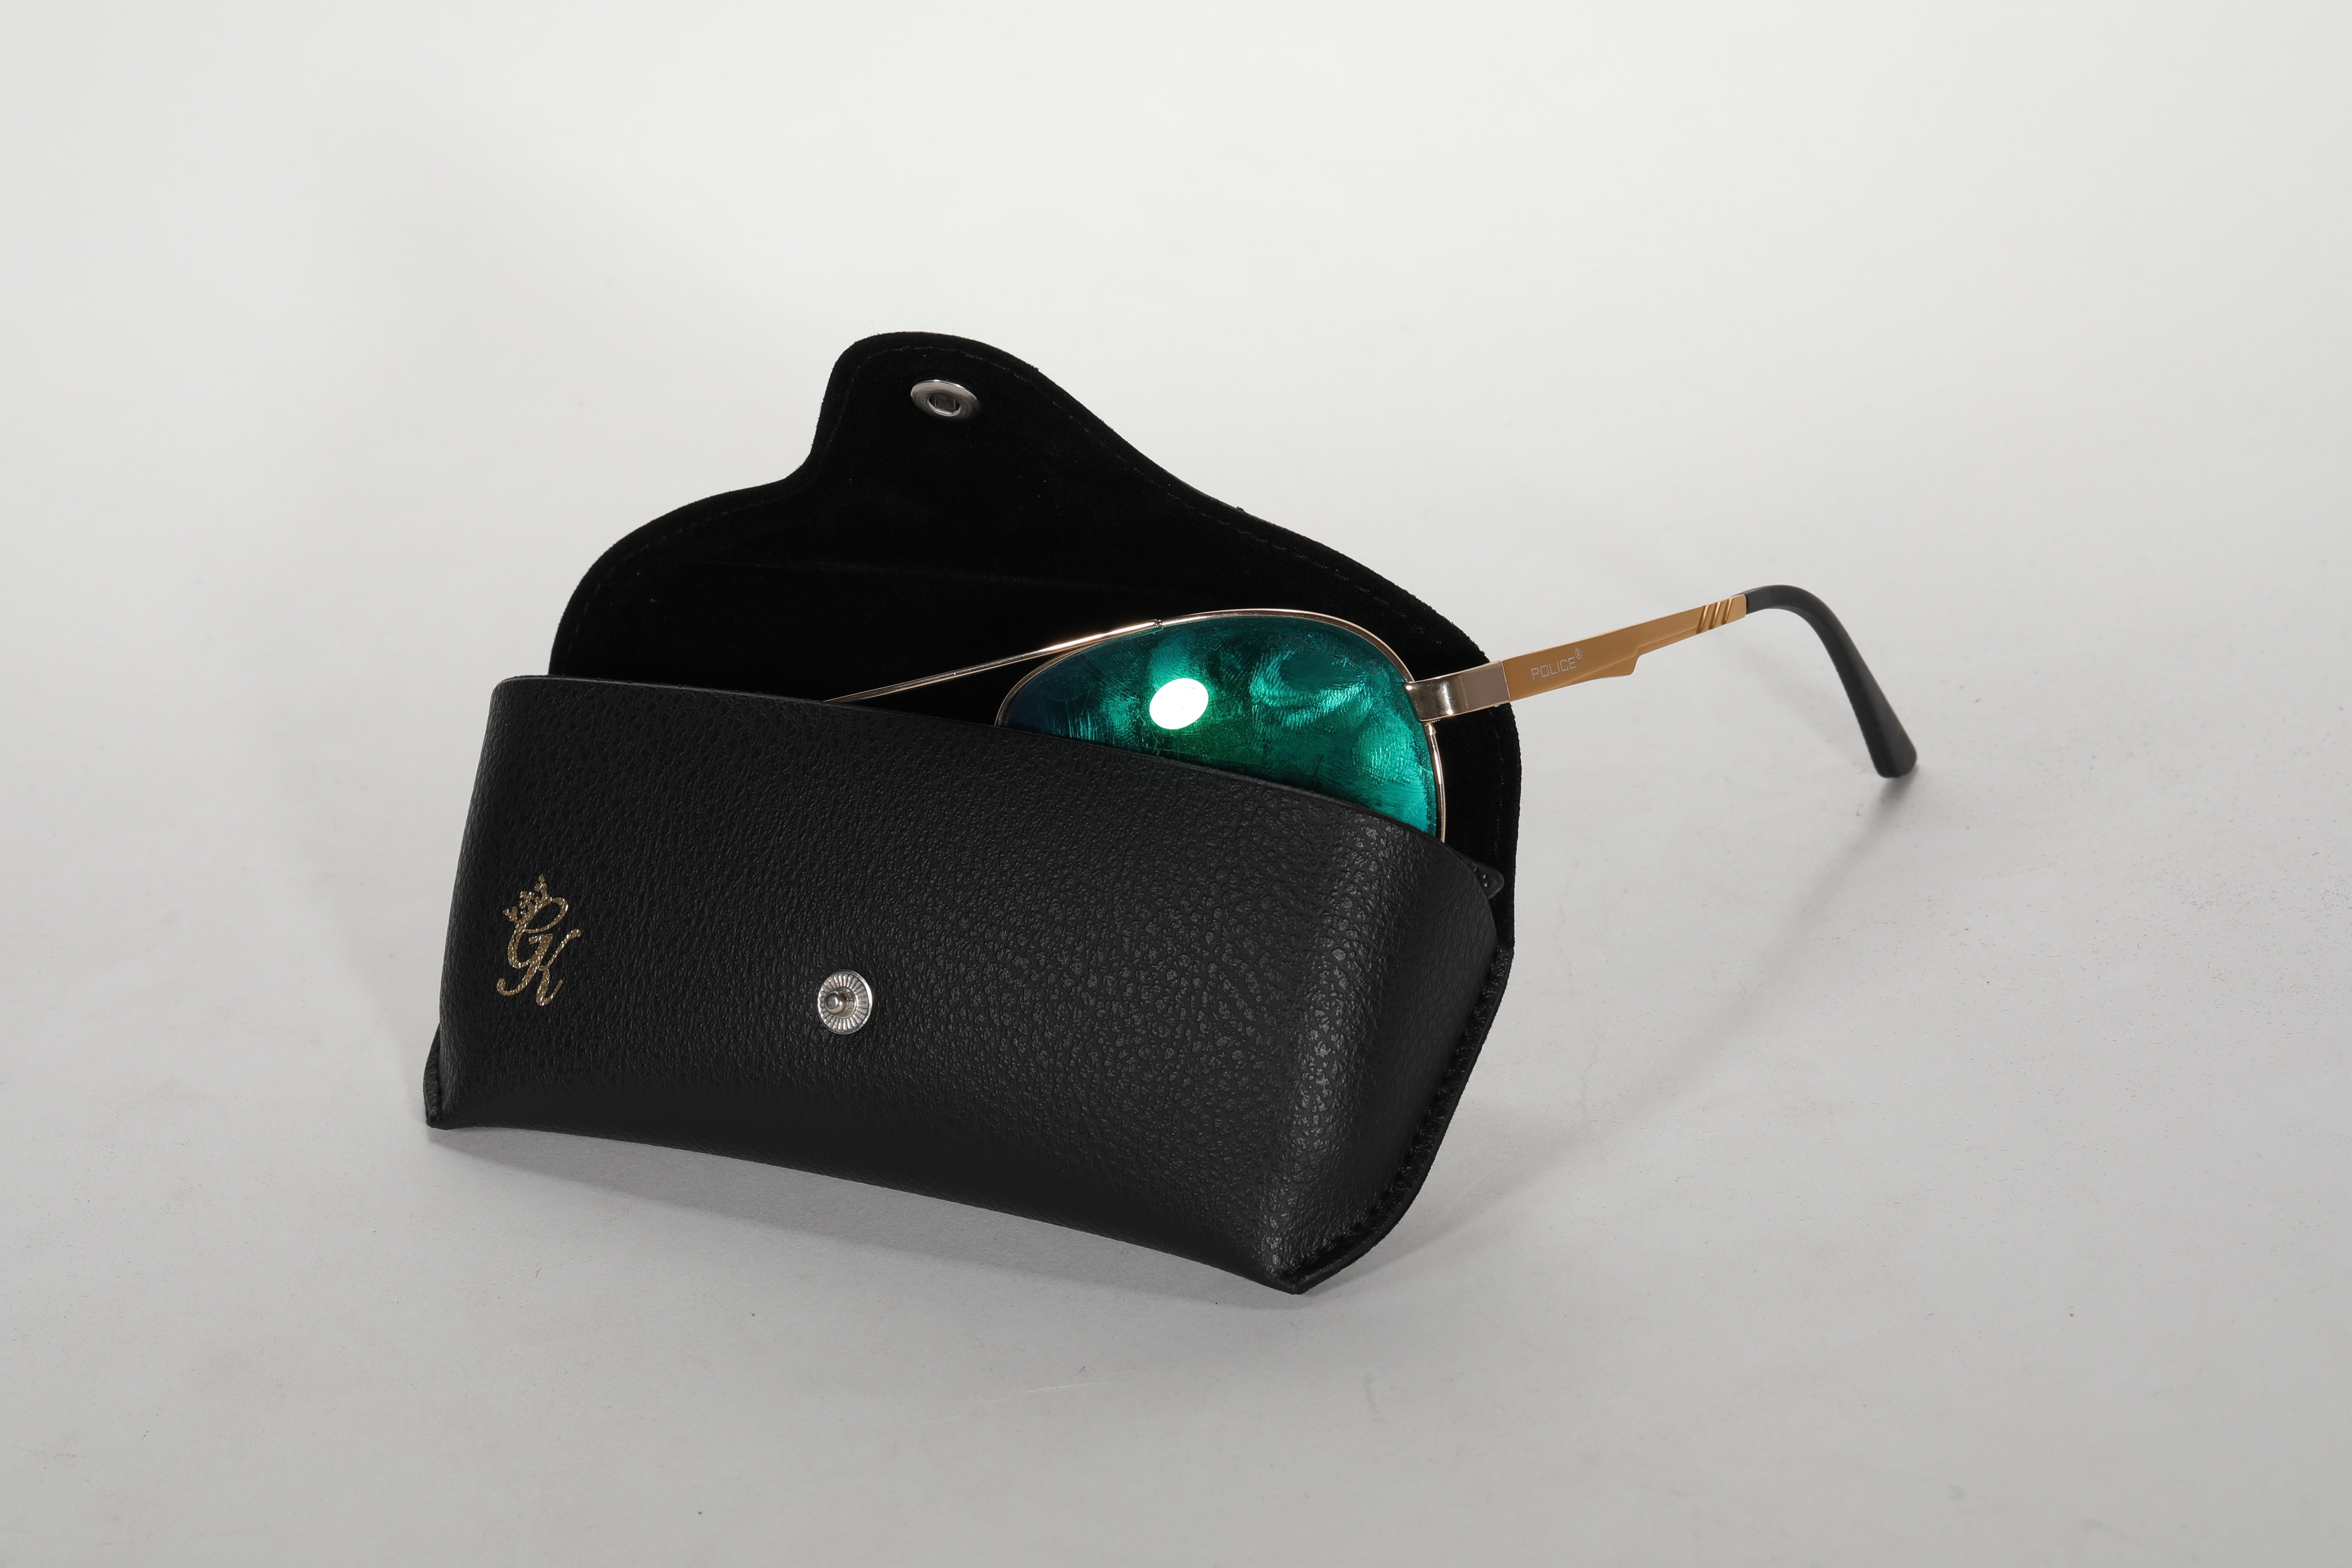 2021 Glasses Box Sunglasses Are Black with LOGO Printed And Look Like A Leather Bag